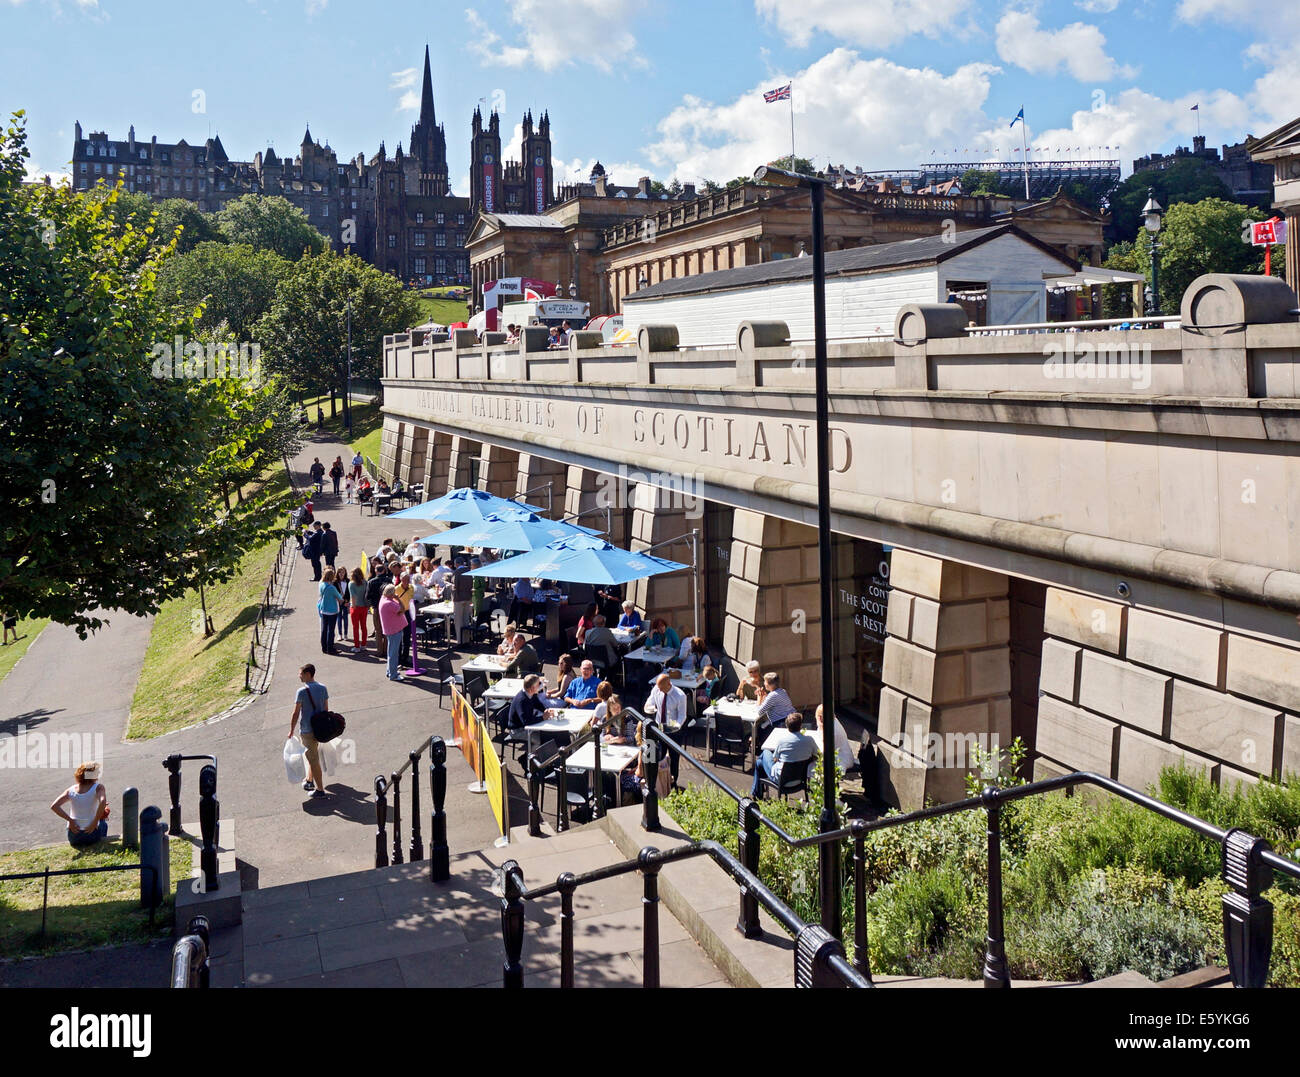 Entrance to the National Galleries of Scotland in Edinburgh with visitors enjoying food and drink at restaurant - Stock Image